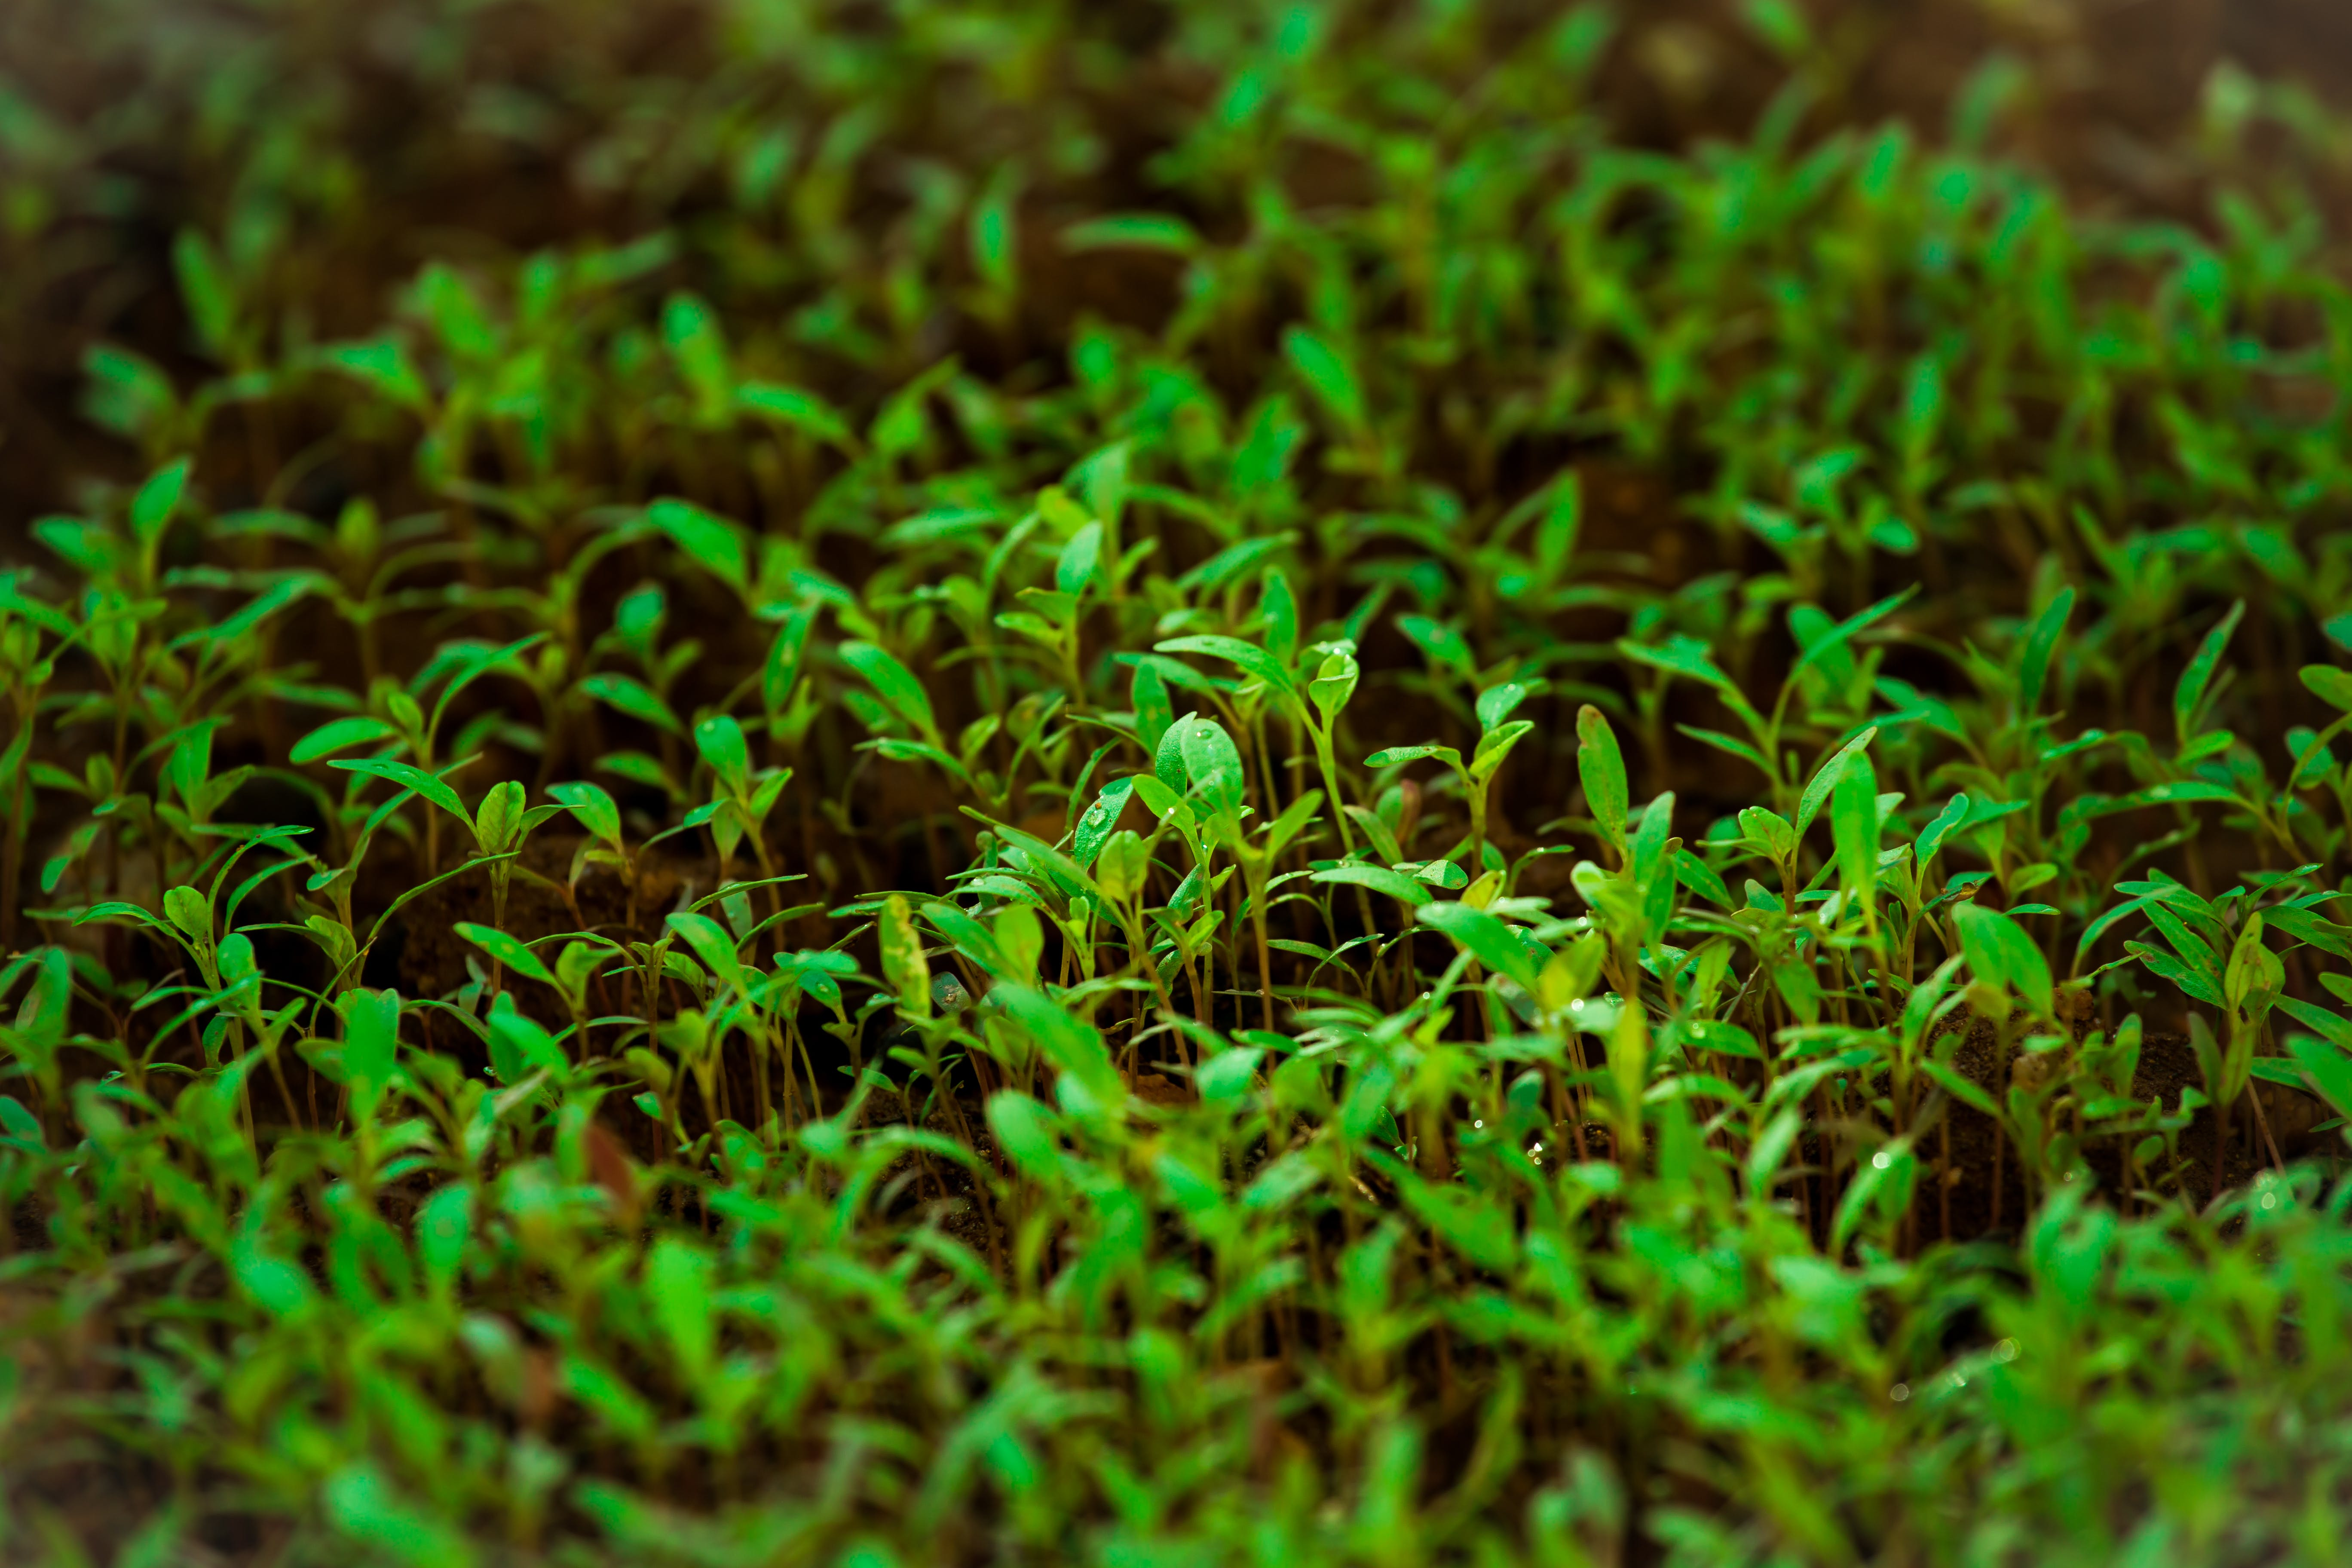 Green Grass in Tilt Shift Lens Photography